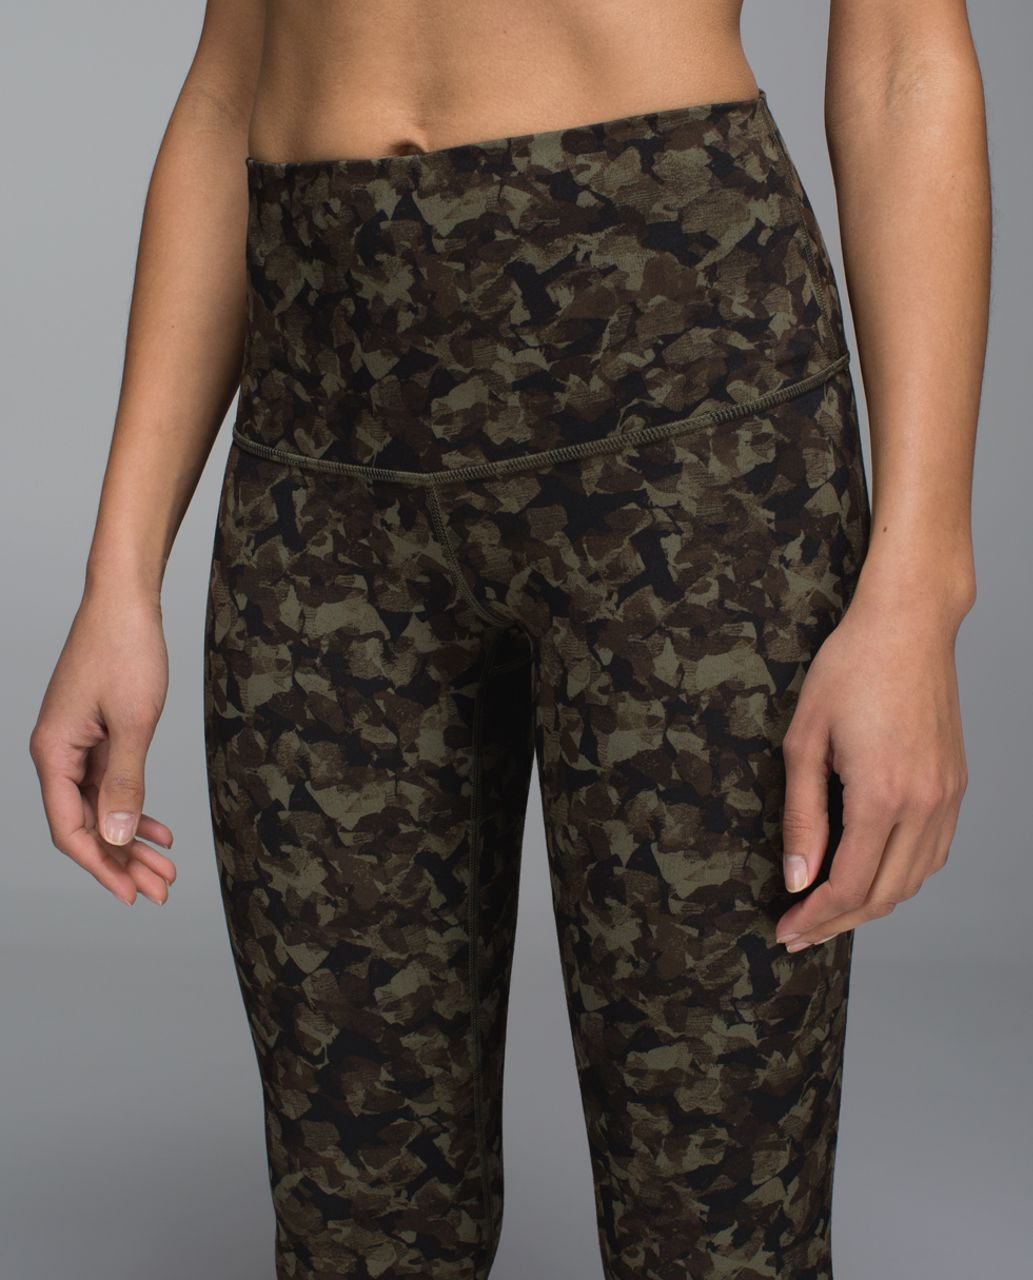 Lululemon Wunder Under Pant *Full-On Luon (Roll Down) - Mystic Jungle Fatigue Green Black